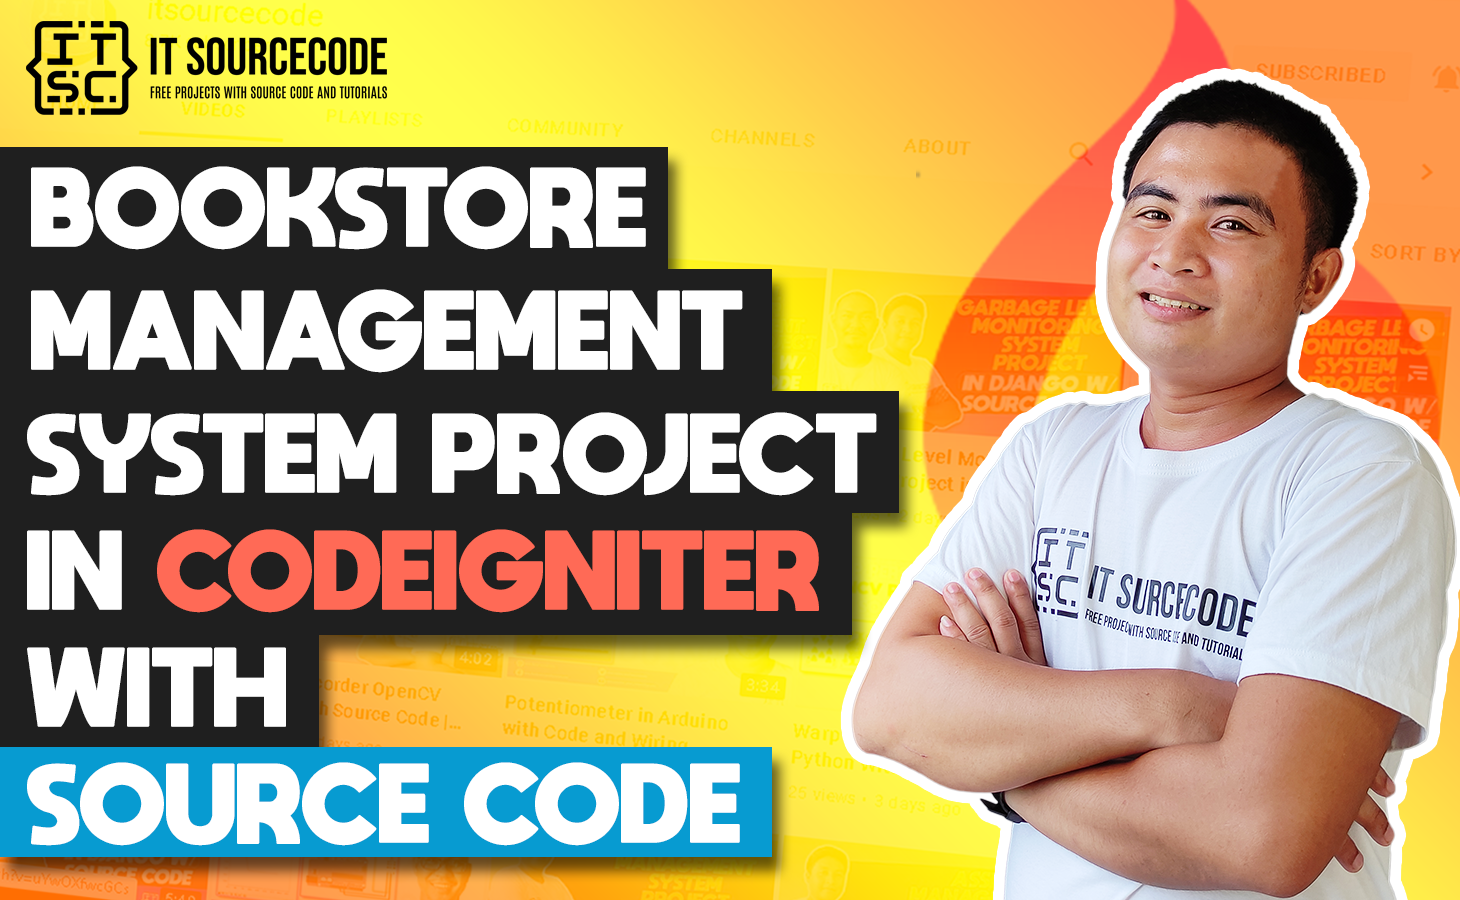 Bookstore Management System Project In CodeIgniter With Source Code